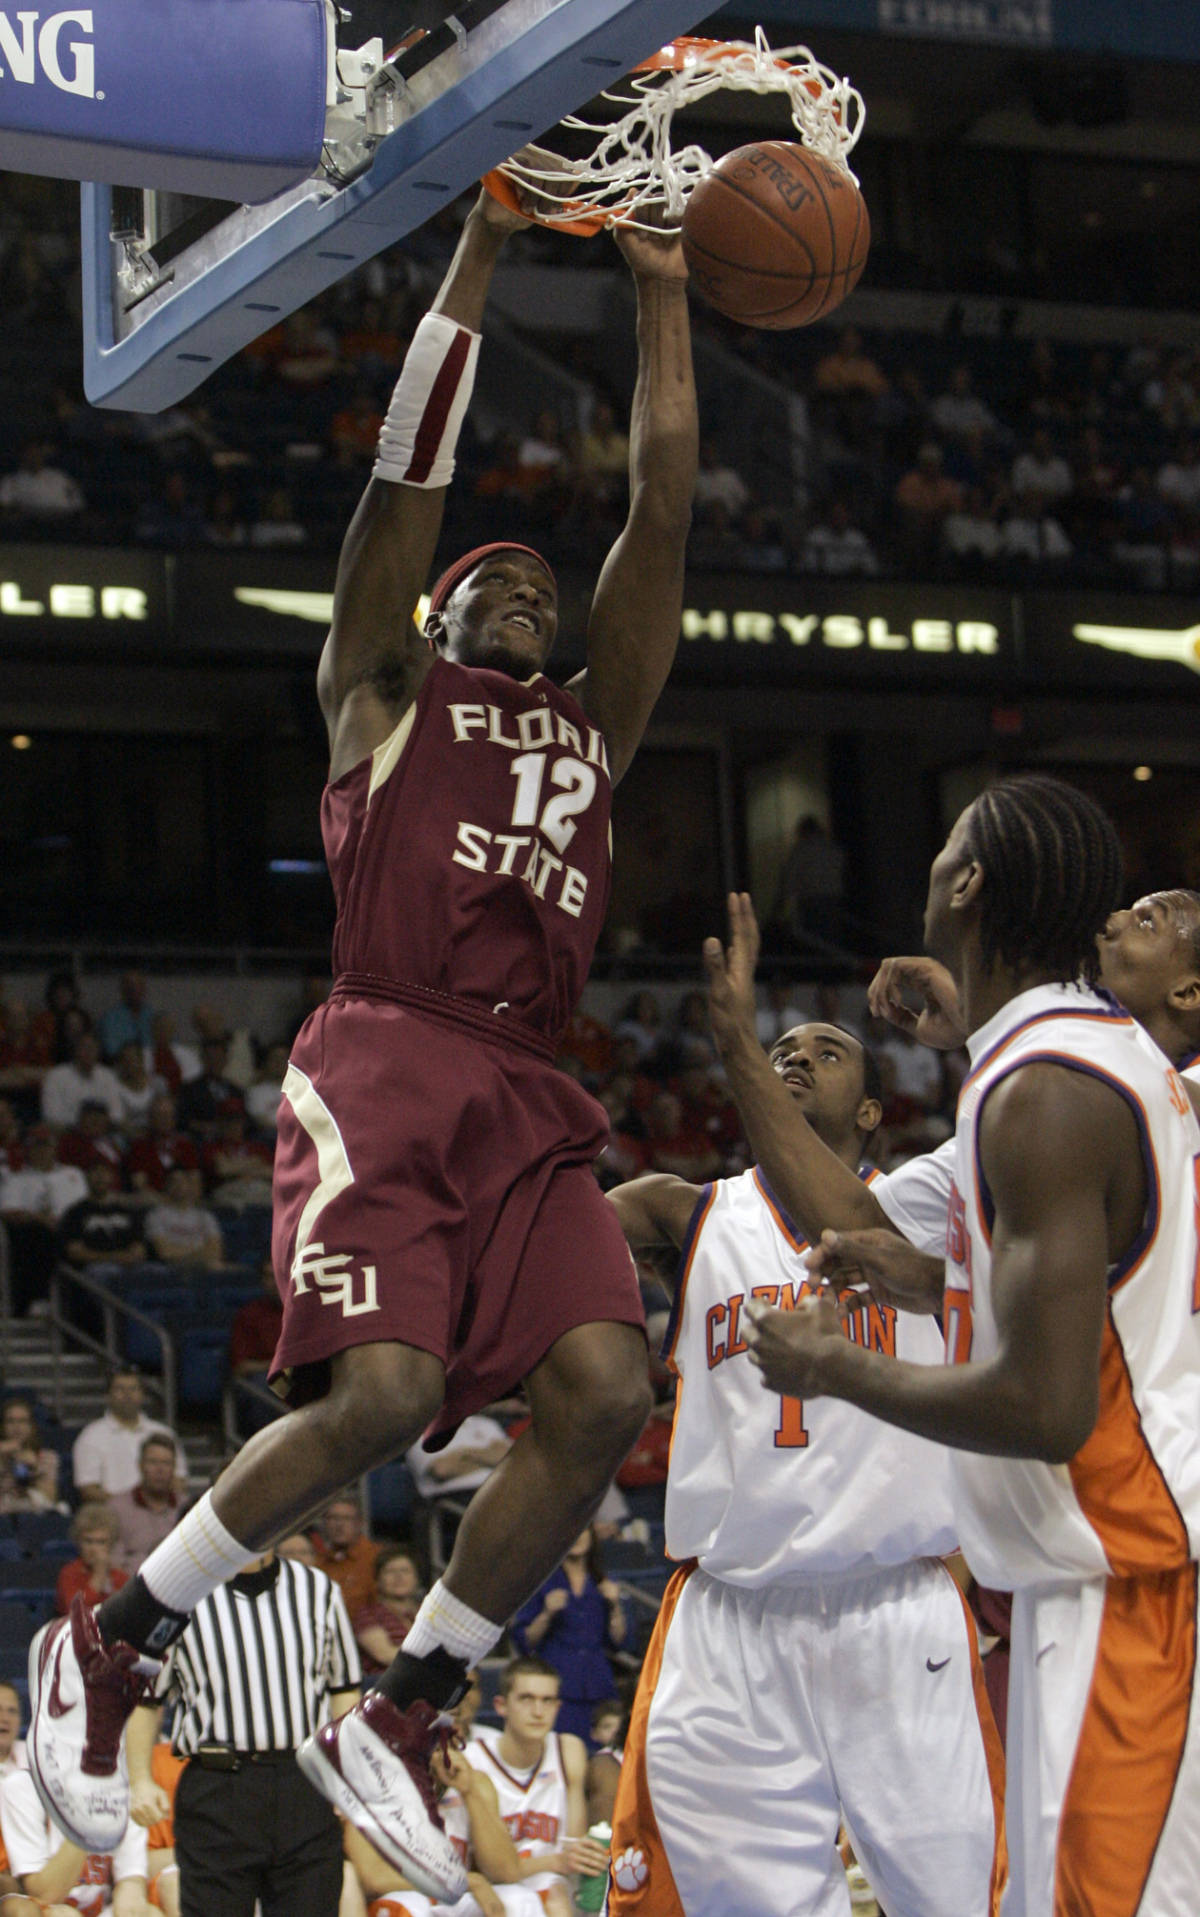 Florida State's Al Thornton (12) dunks over Clemson's K.C. Rivers (1) during the fiirst half of a first round game of the Men's Atlantic Coast Conference basketball tournament in Tampa, Fla., Thursday, March 8, 2007. (AP Photo/John Raoux)